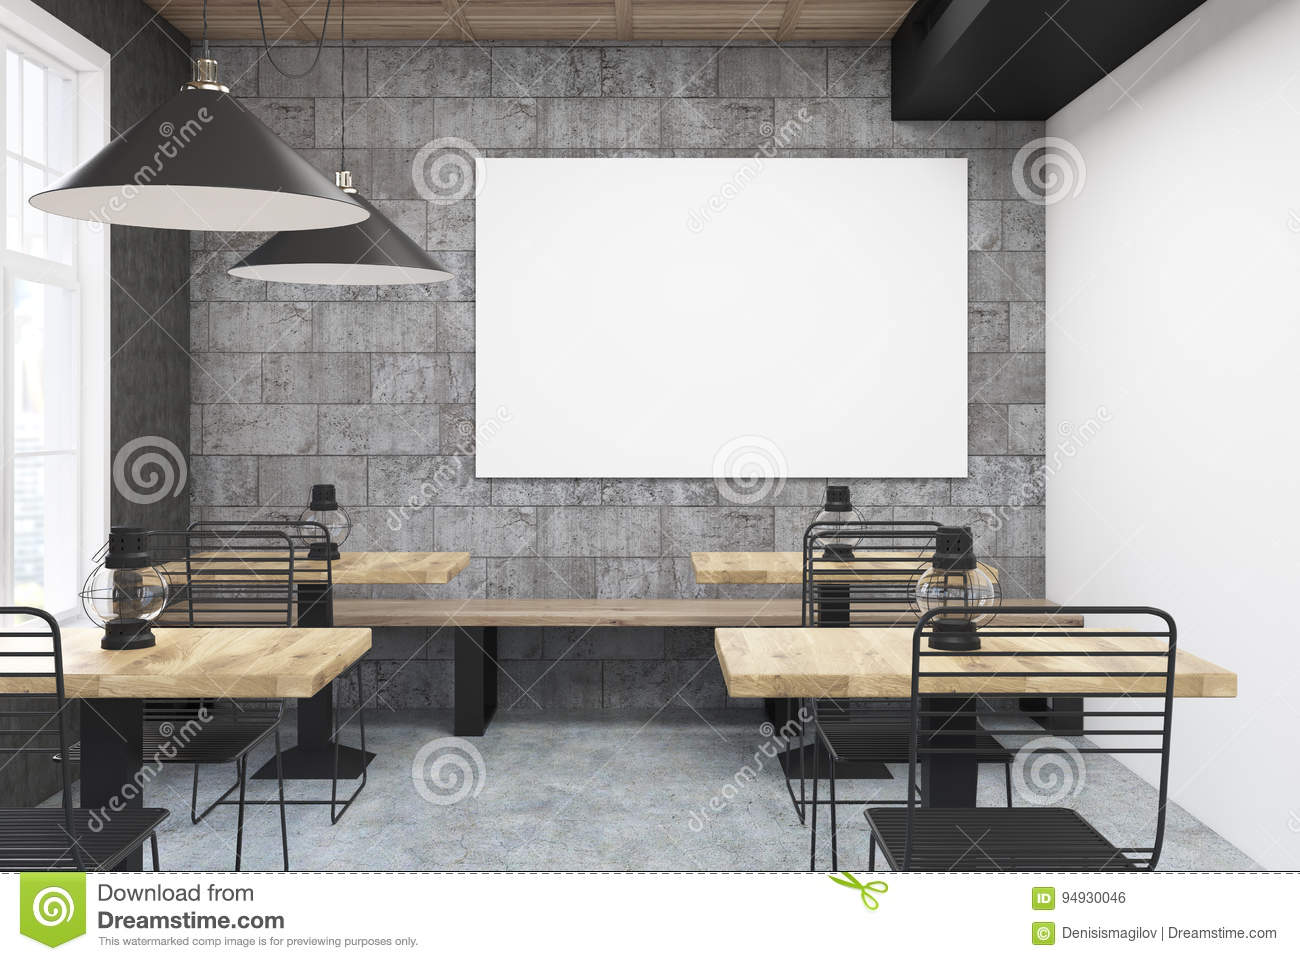 gray and white cafe interior poster - Large Cafe Interior